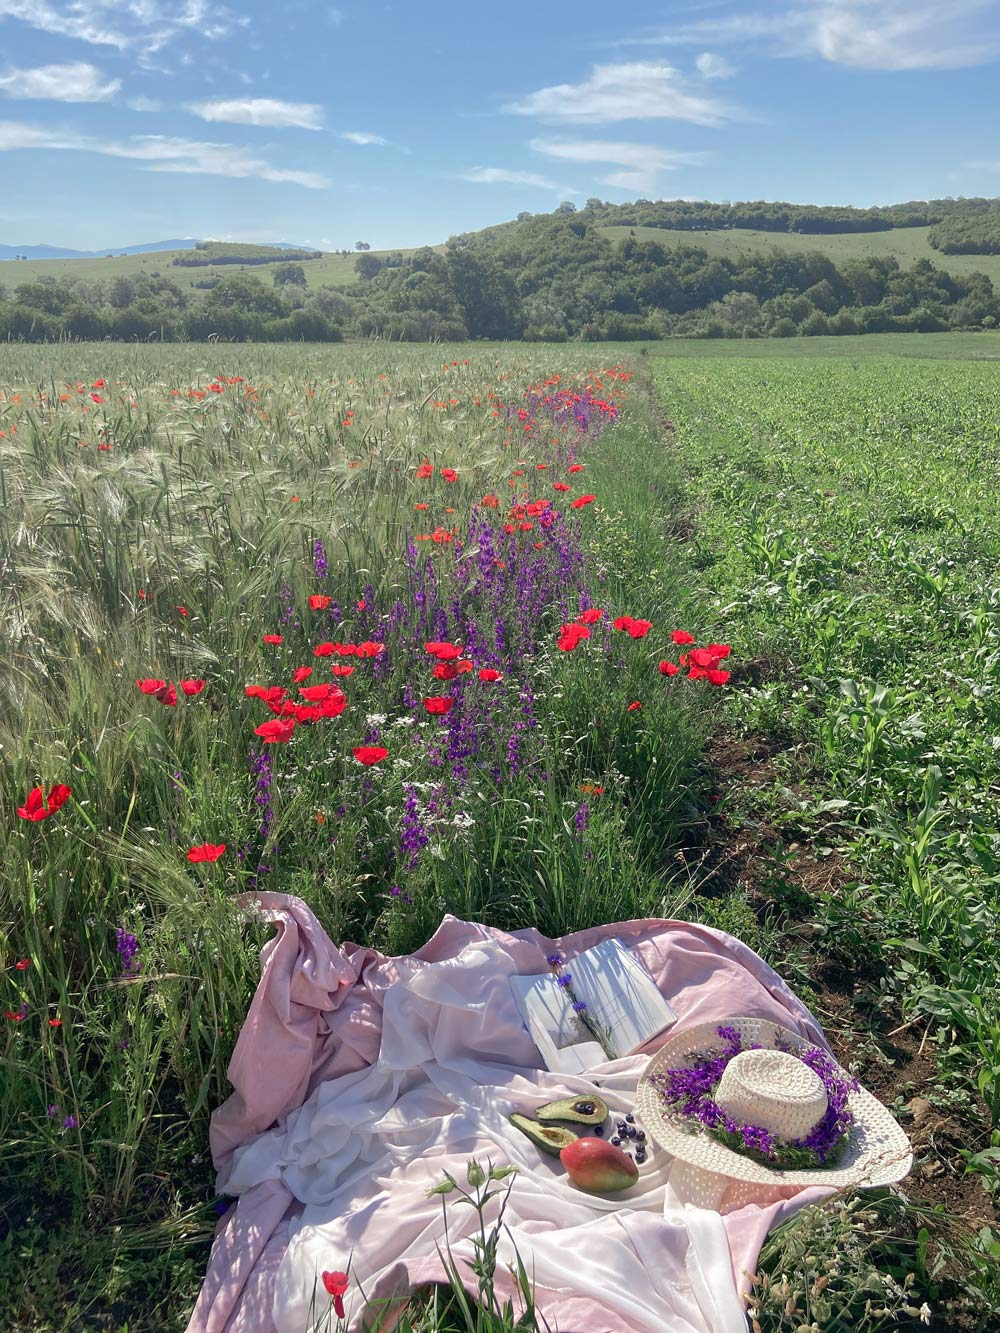 picnic blanket with food in a wildflower field